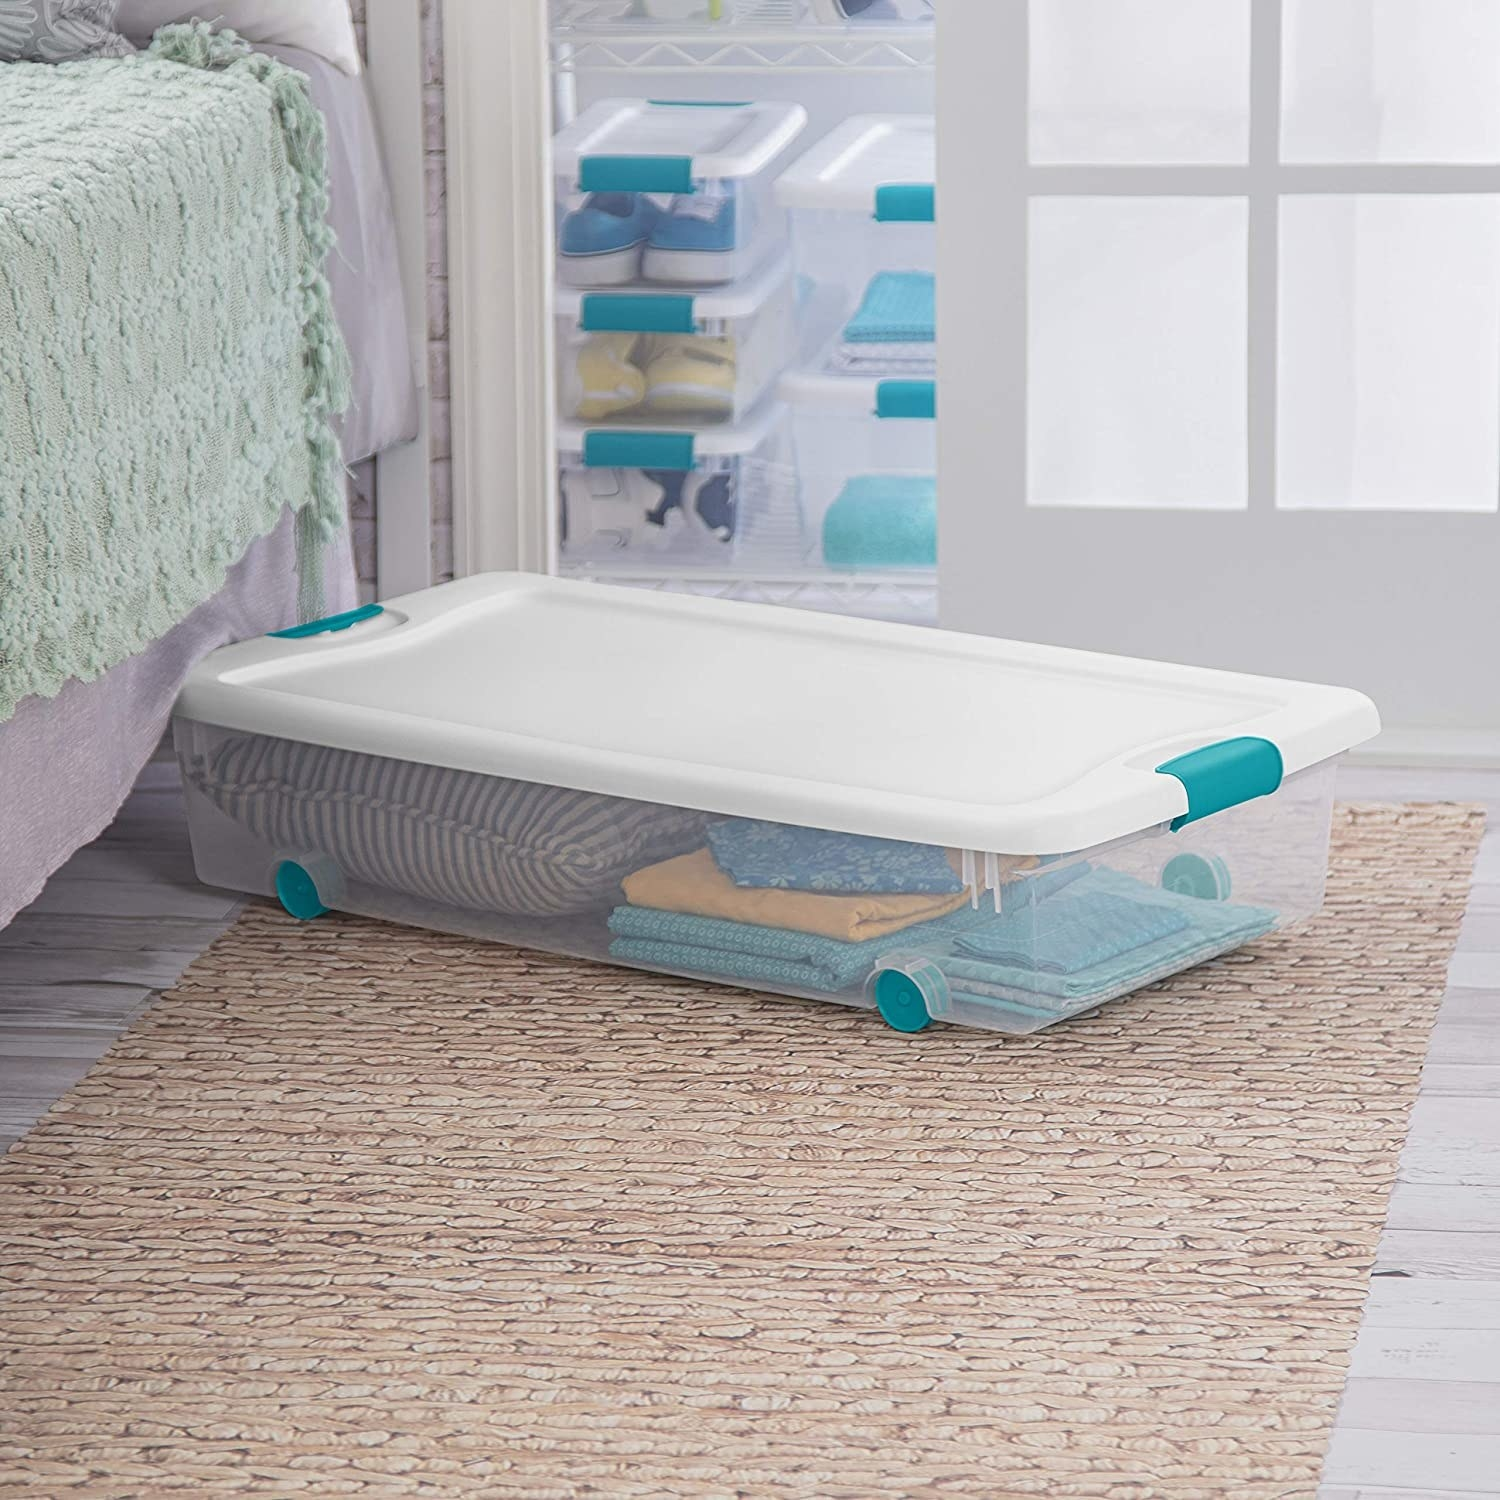 A rolling storage container with a lid in a bedroom